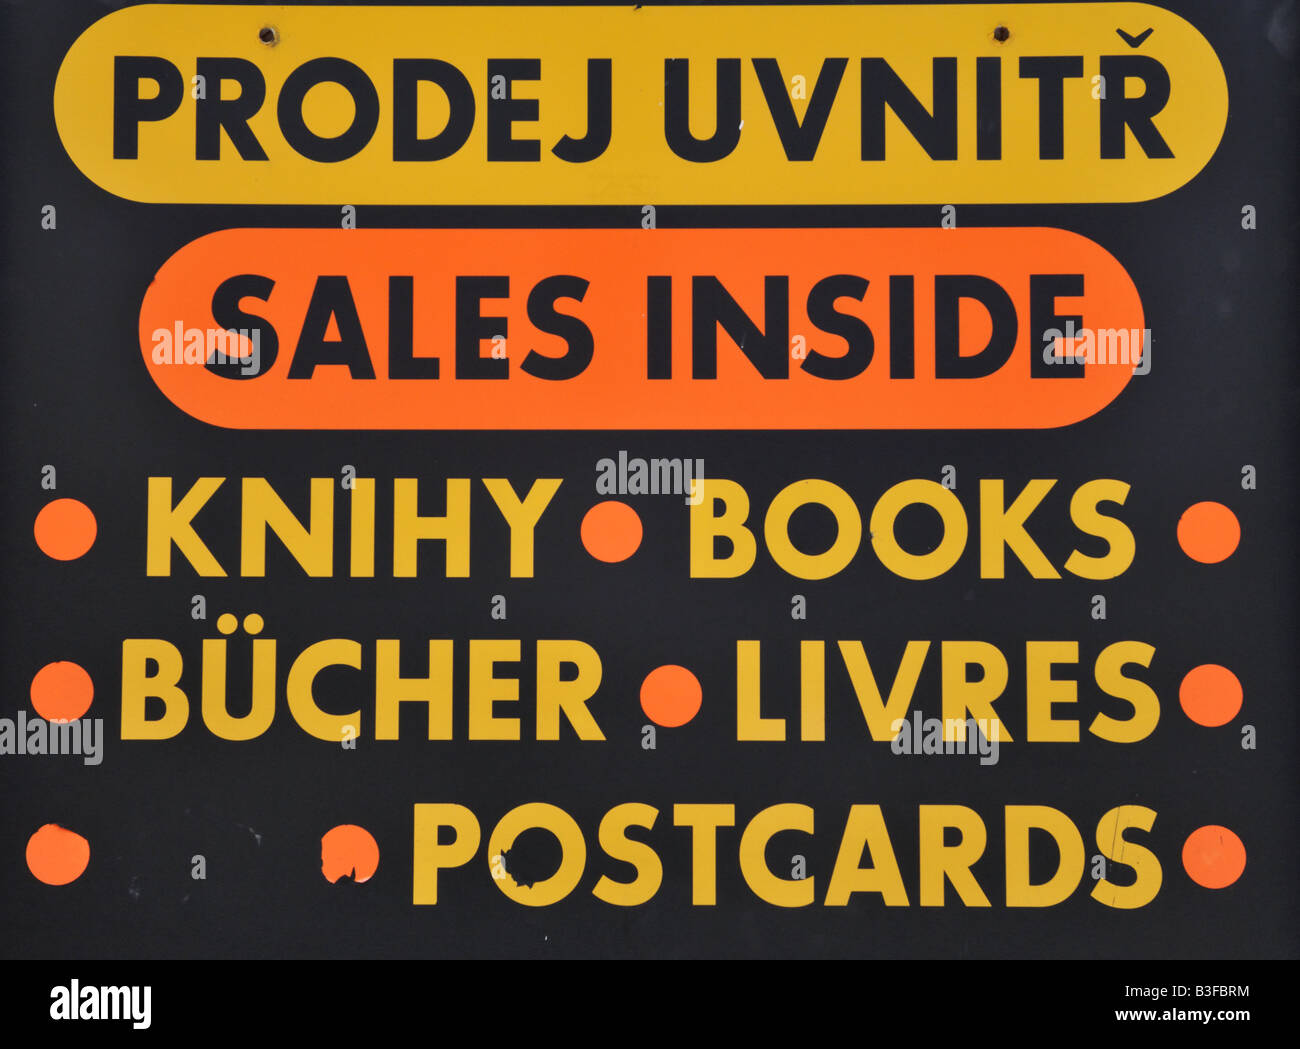 Czech bookshop sign in many languages - Stock Image